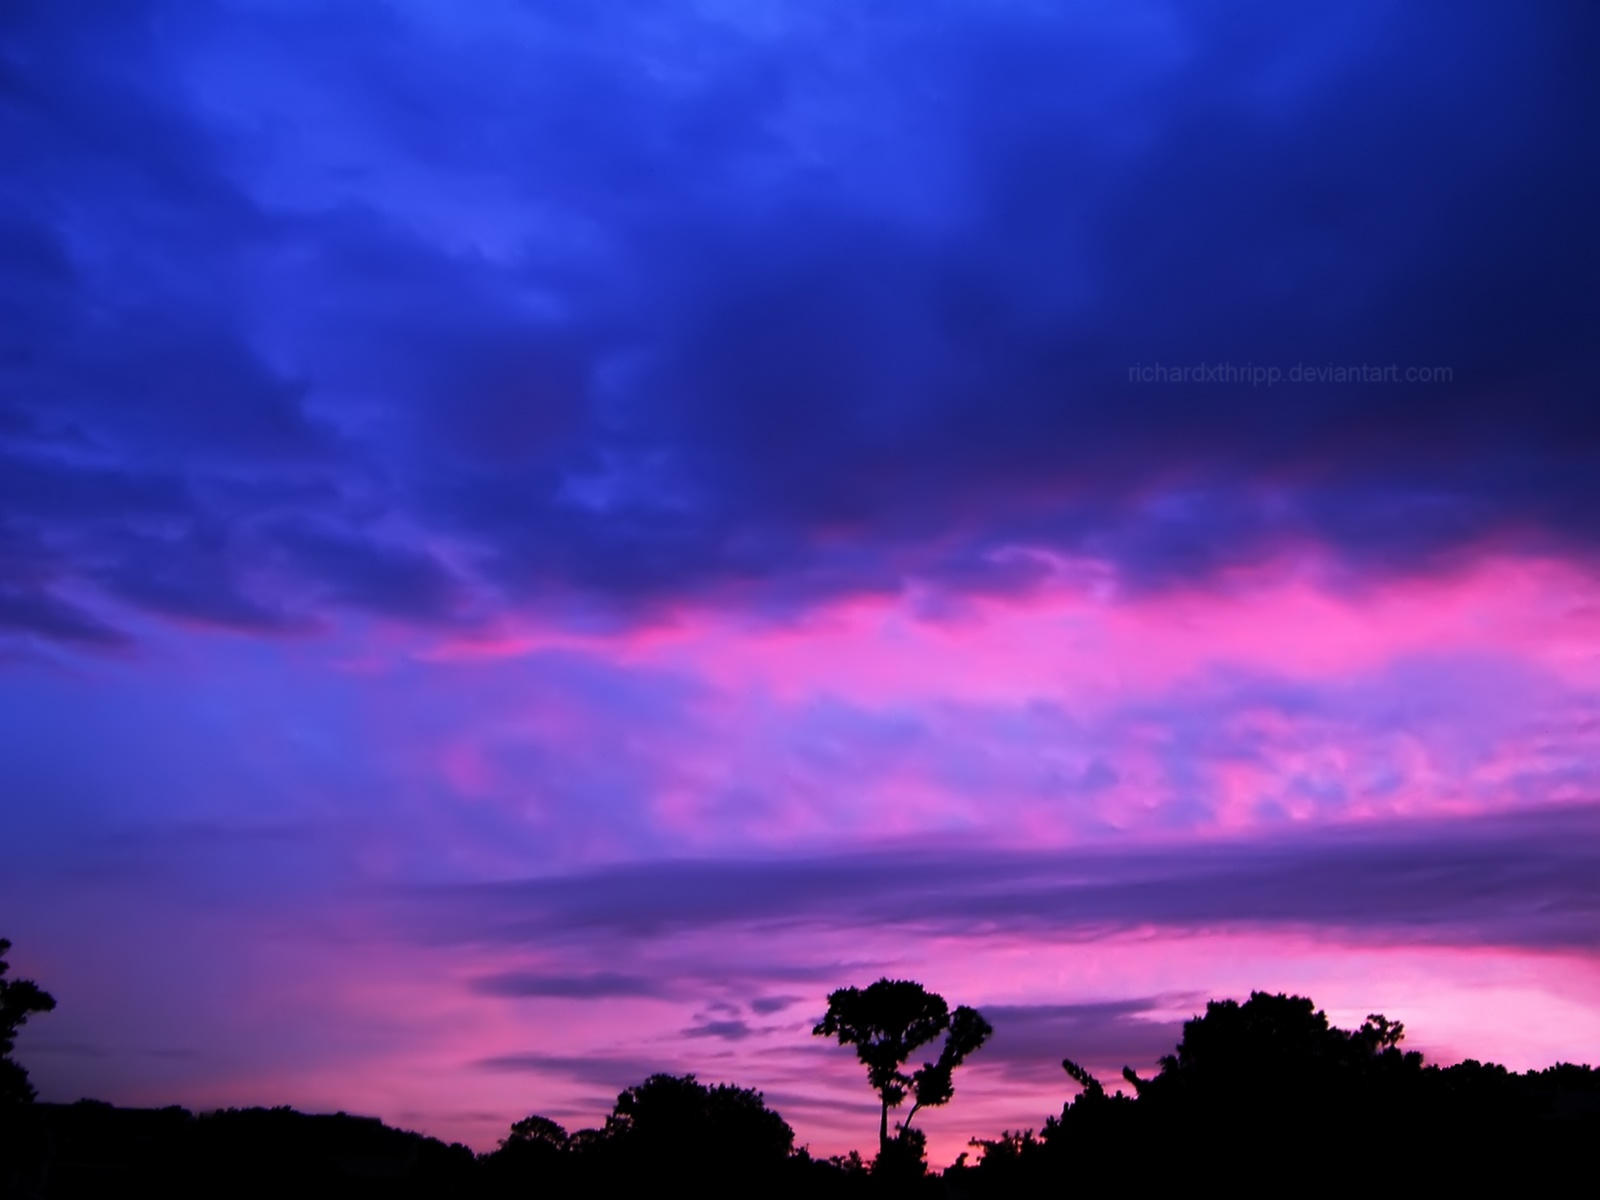 Pink and purple sunset 3 by richardxthripp on deviantart pink and purple sunset 3 wp by richardxthripp junglespirit